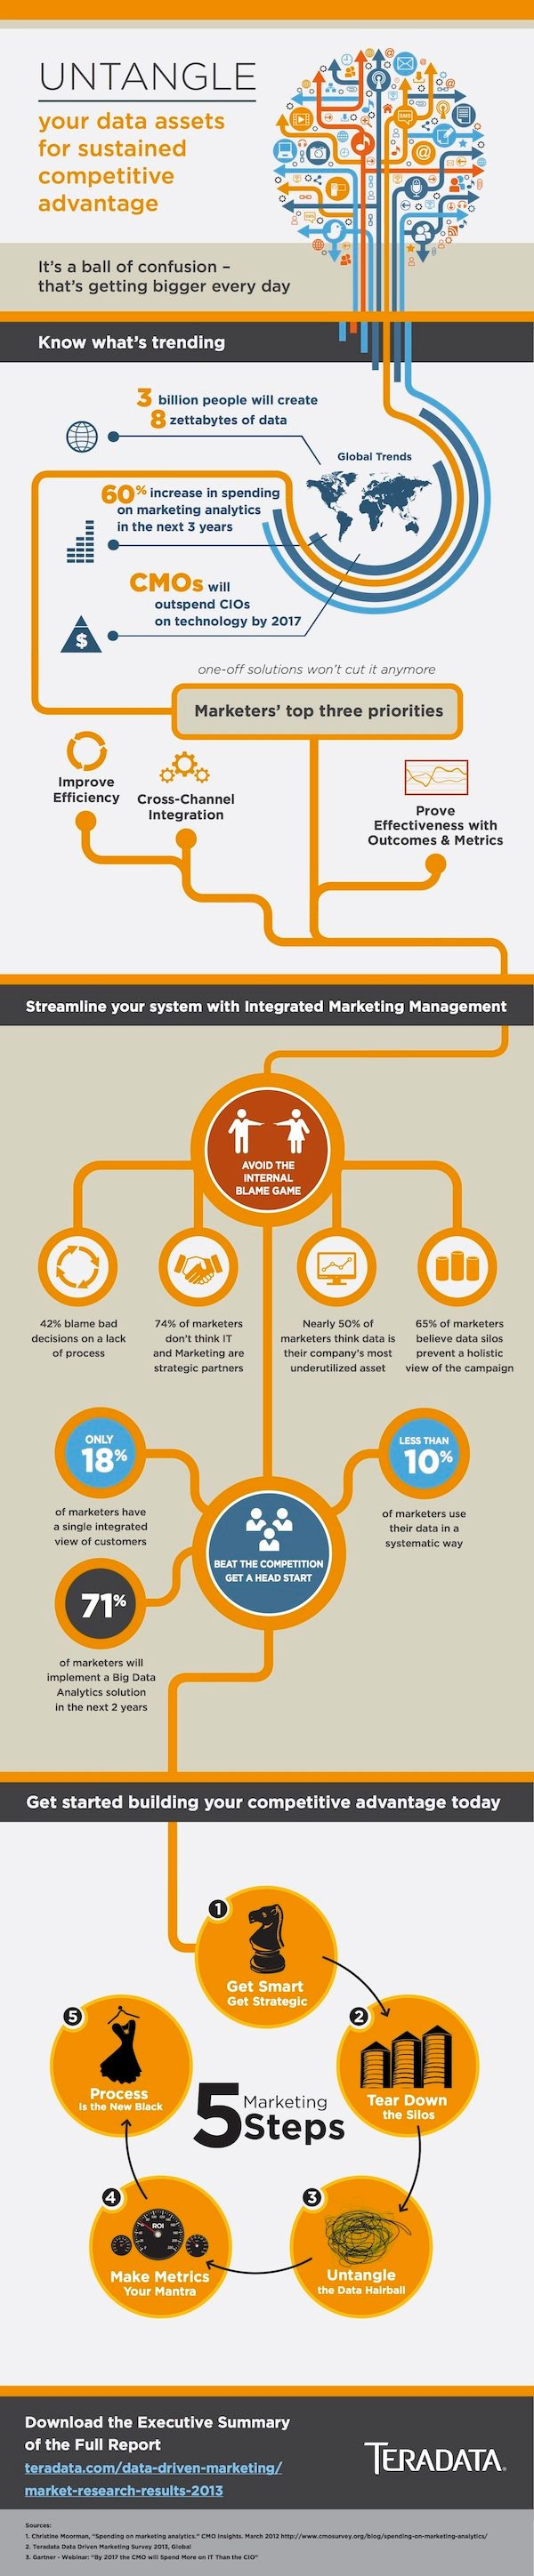 Teradata Data Driven Marketing Survey Results Infographic.jpg